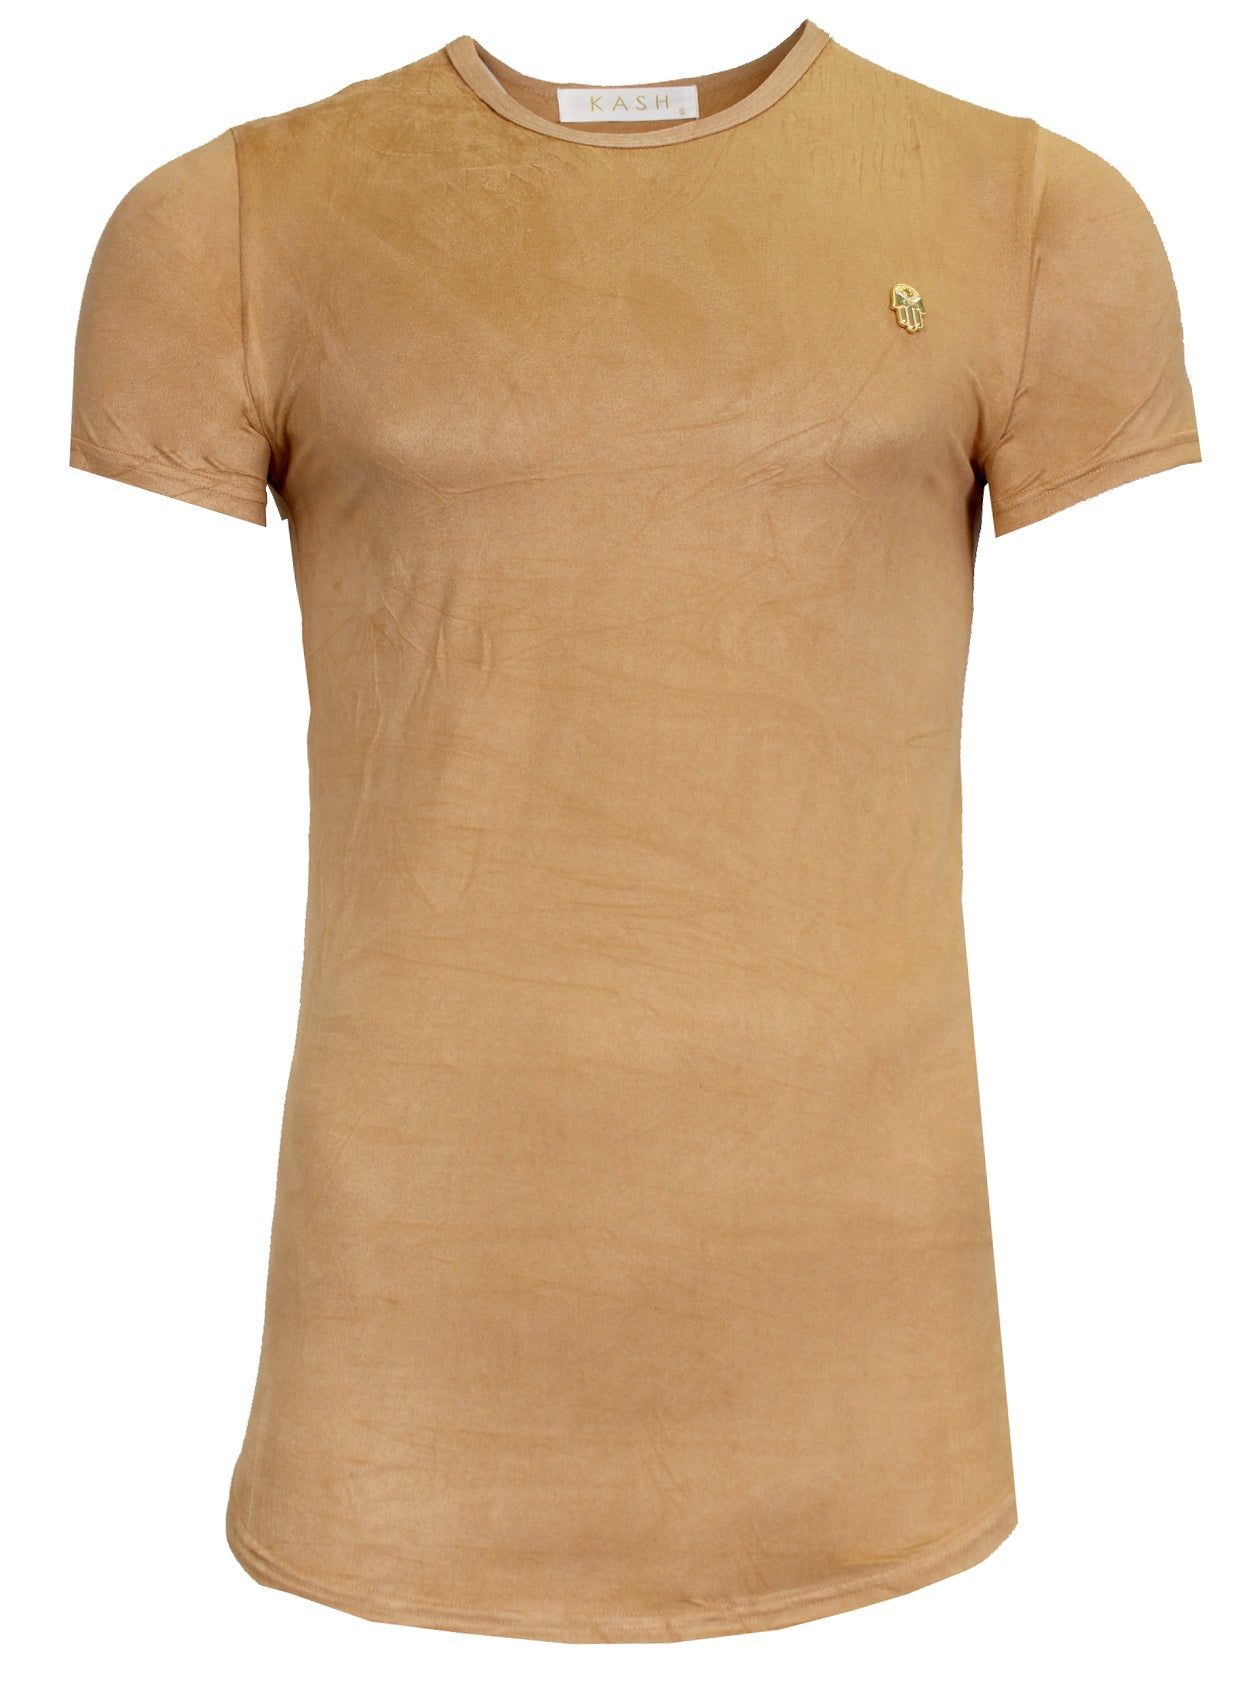 Men's 3D Hamsa Short Sleeve Crewneck Tee Shirt-Khaki